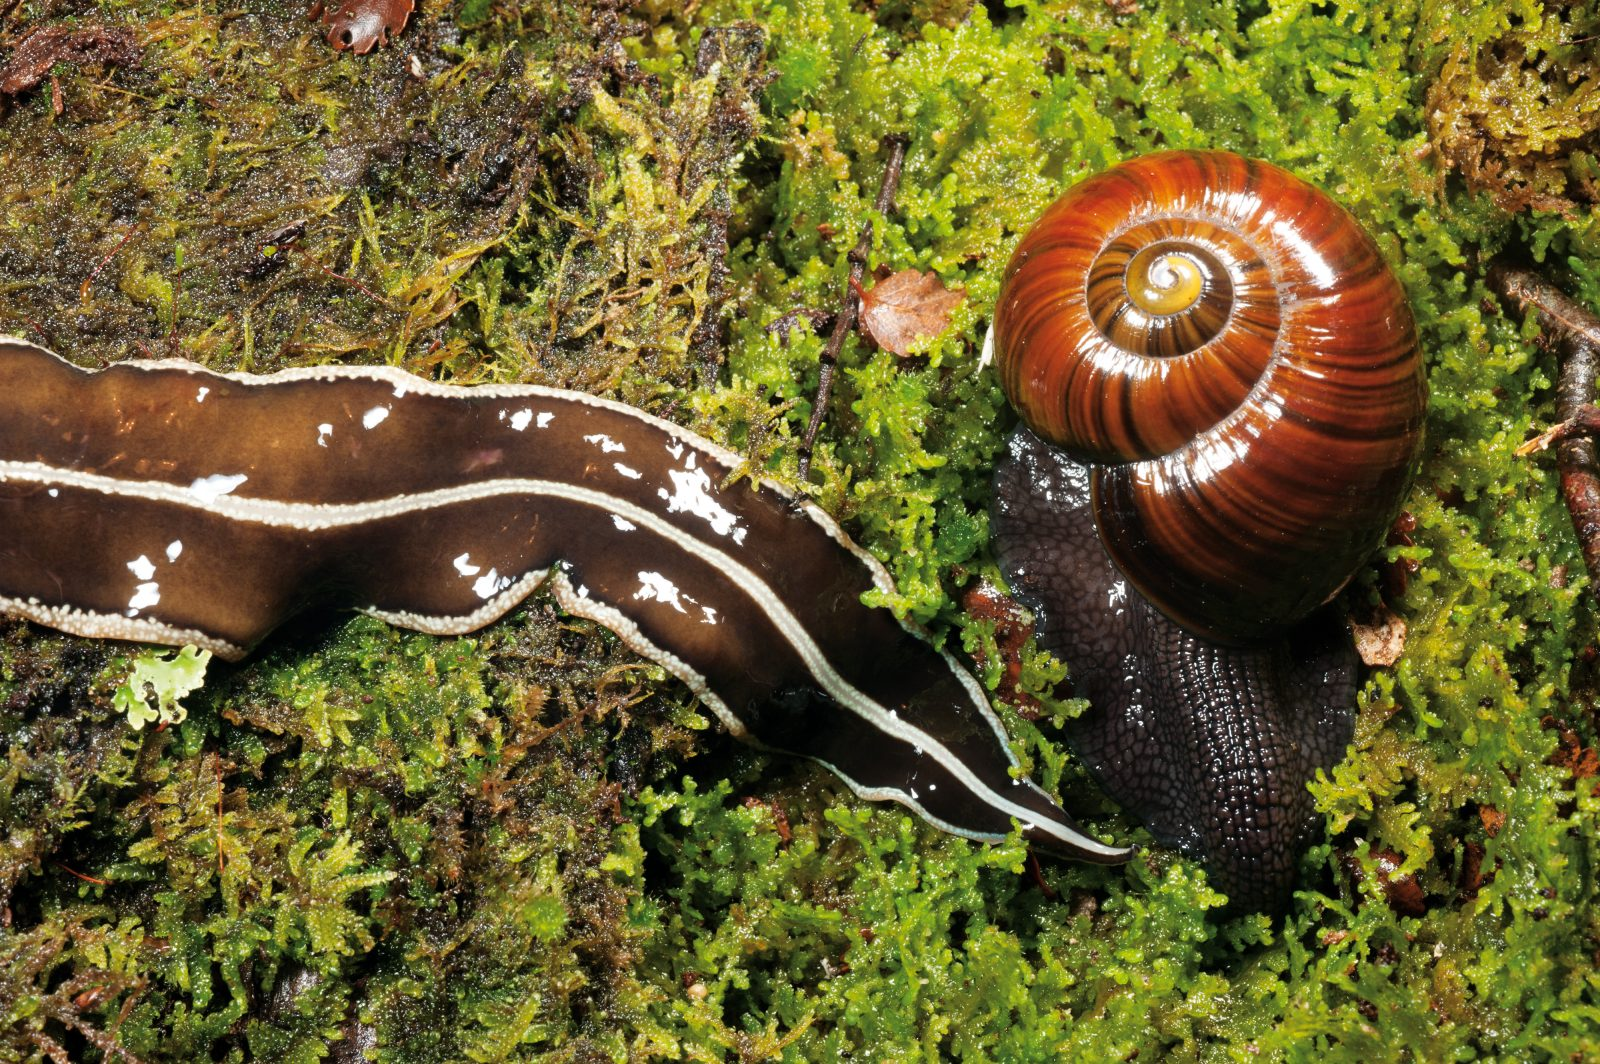 When these two invertebrate predators go head to head, there is only one winner—which is why the Denniston giant snail is ducking for cover. Flatworms can outpace their more cumbersome competitors, and have a range of strategies for attacking them, including coiling around them like a snake, or flipping them over and pouring digestive juices into the shell aperture.